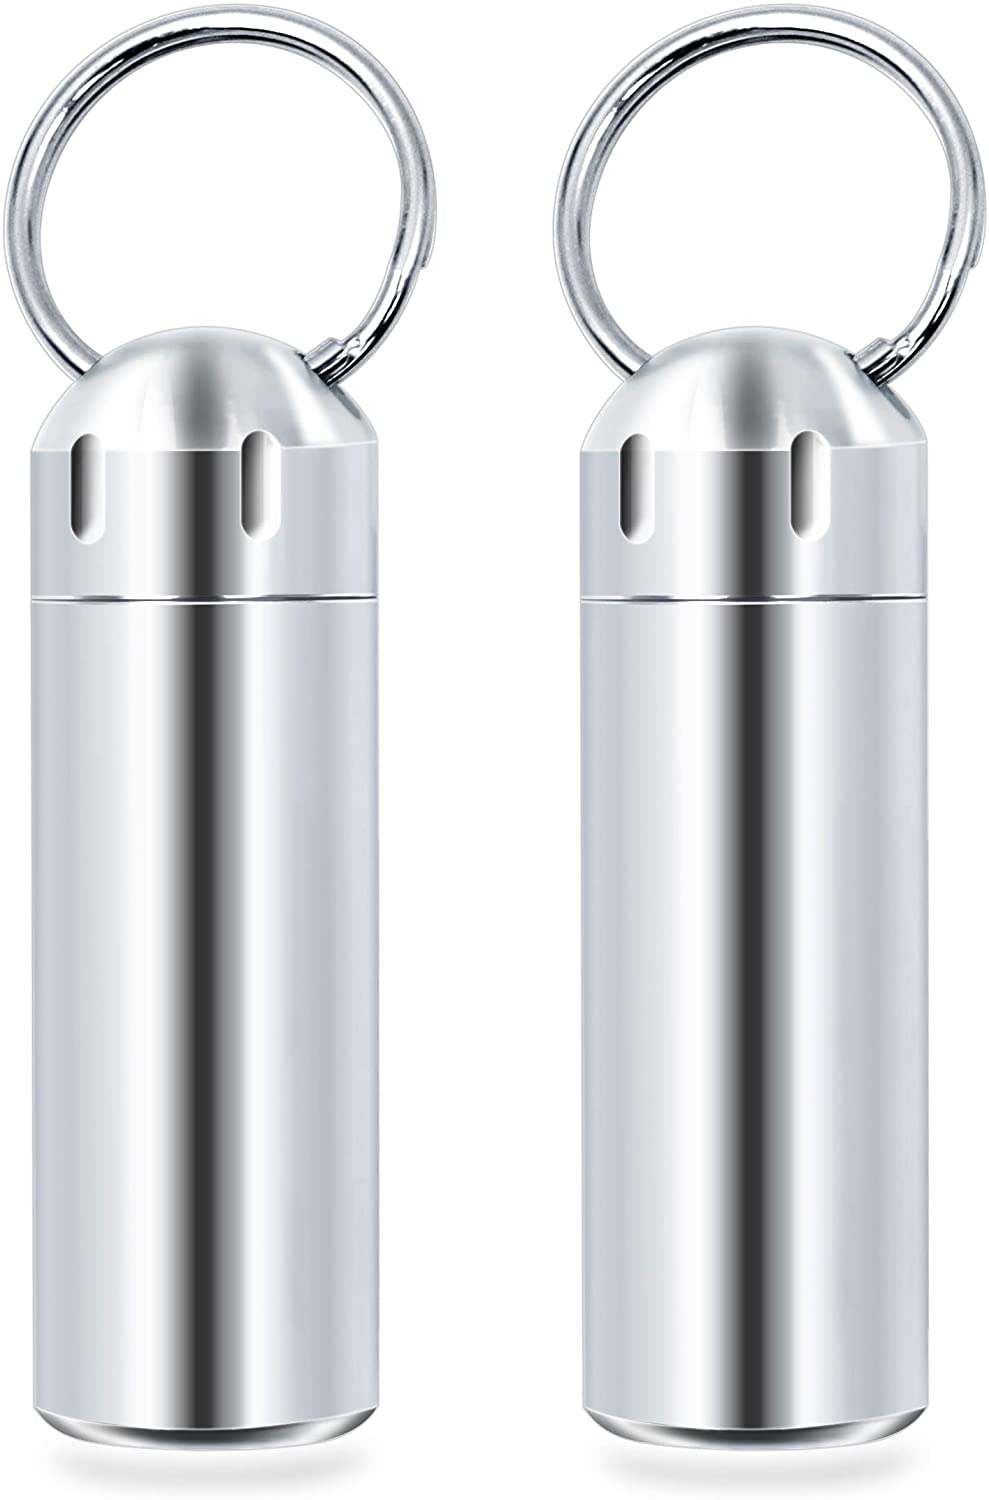 SHD 2 Pack Pill Container Keychain Pill Holder 100% Waterproof Pill Case Single Chamber Stainless Steel Pill Box (Silver)